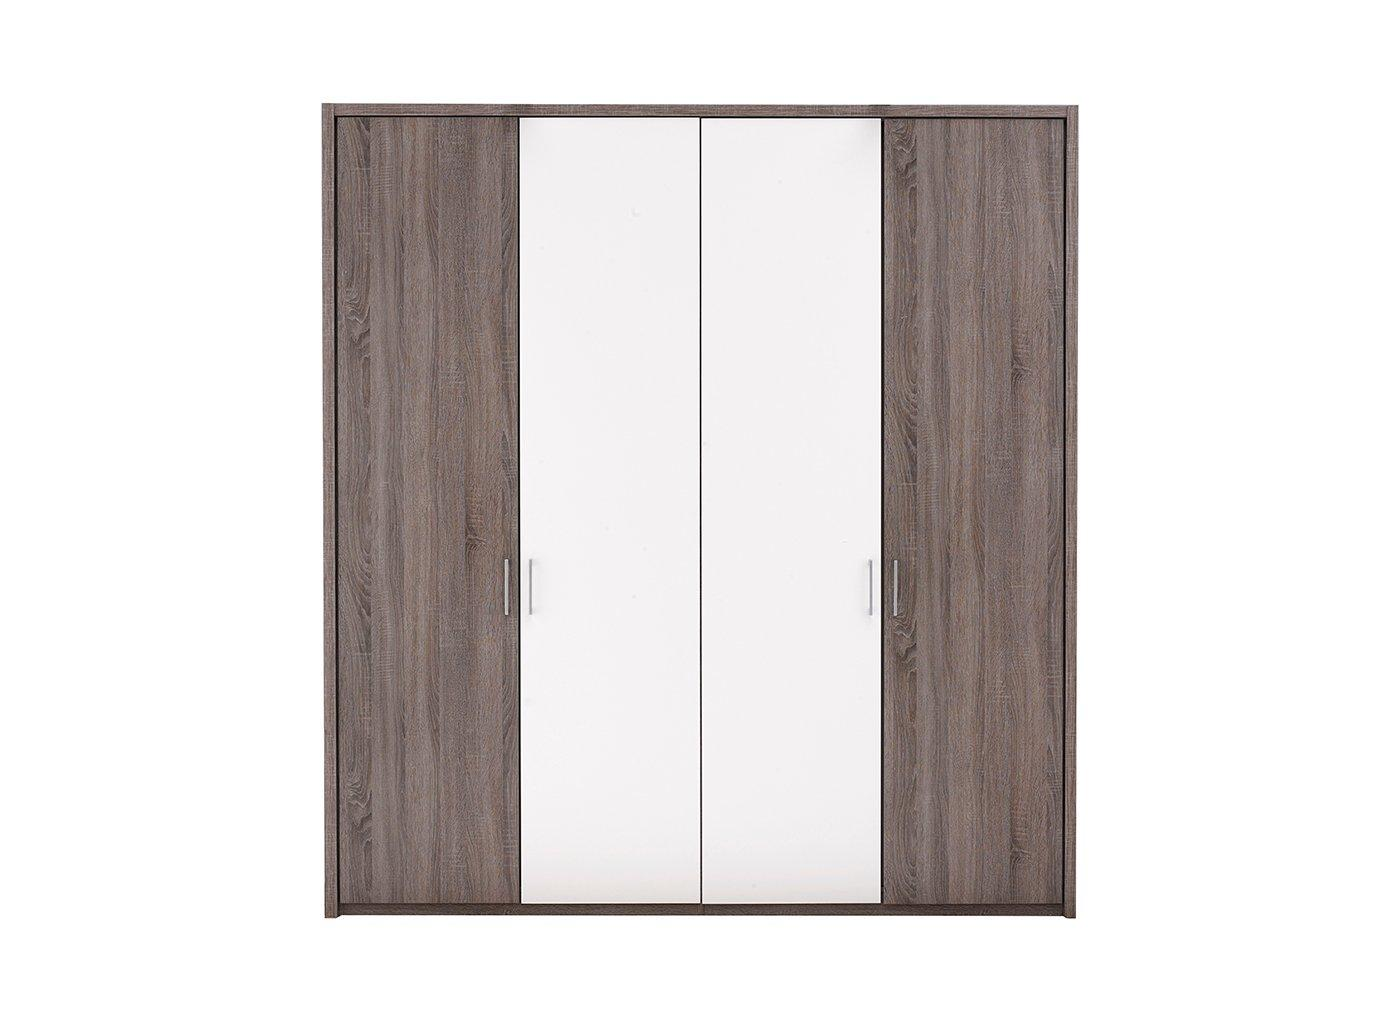 melbourne-4-door-hinged-wardrobe---oak---white